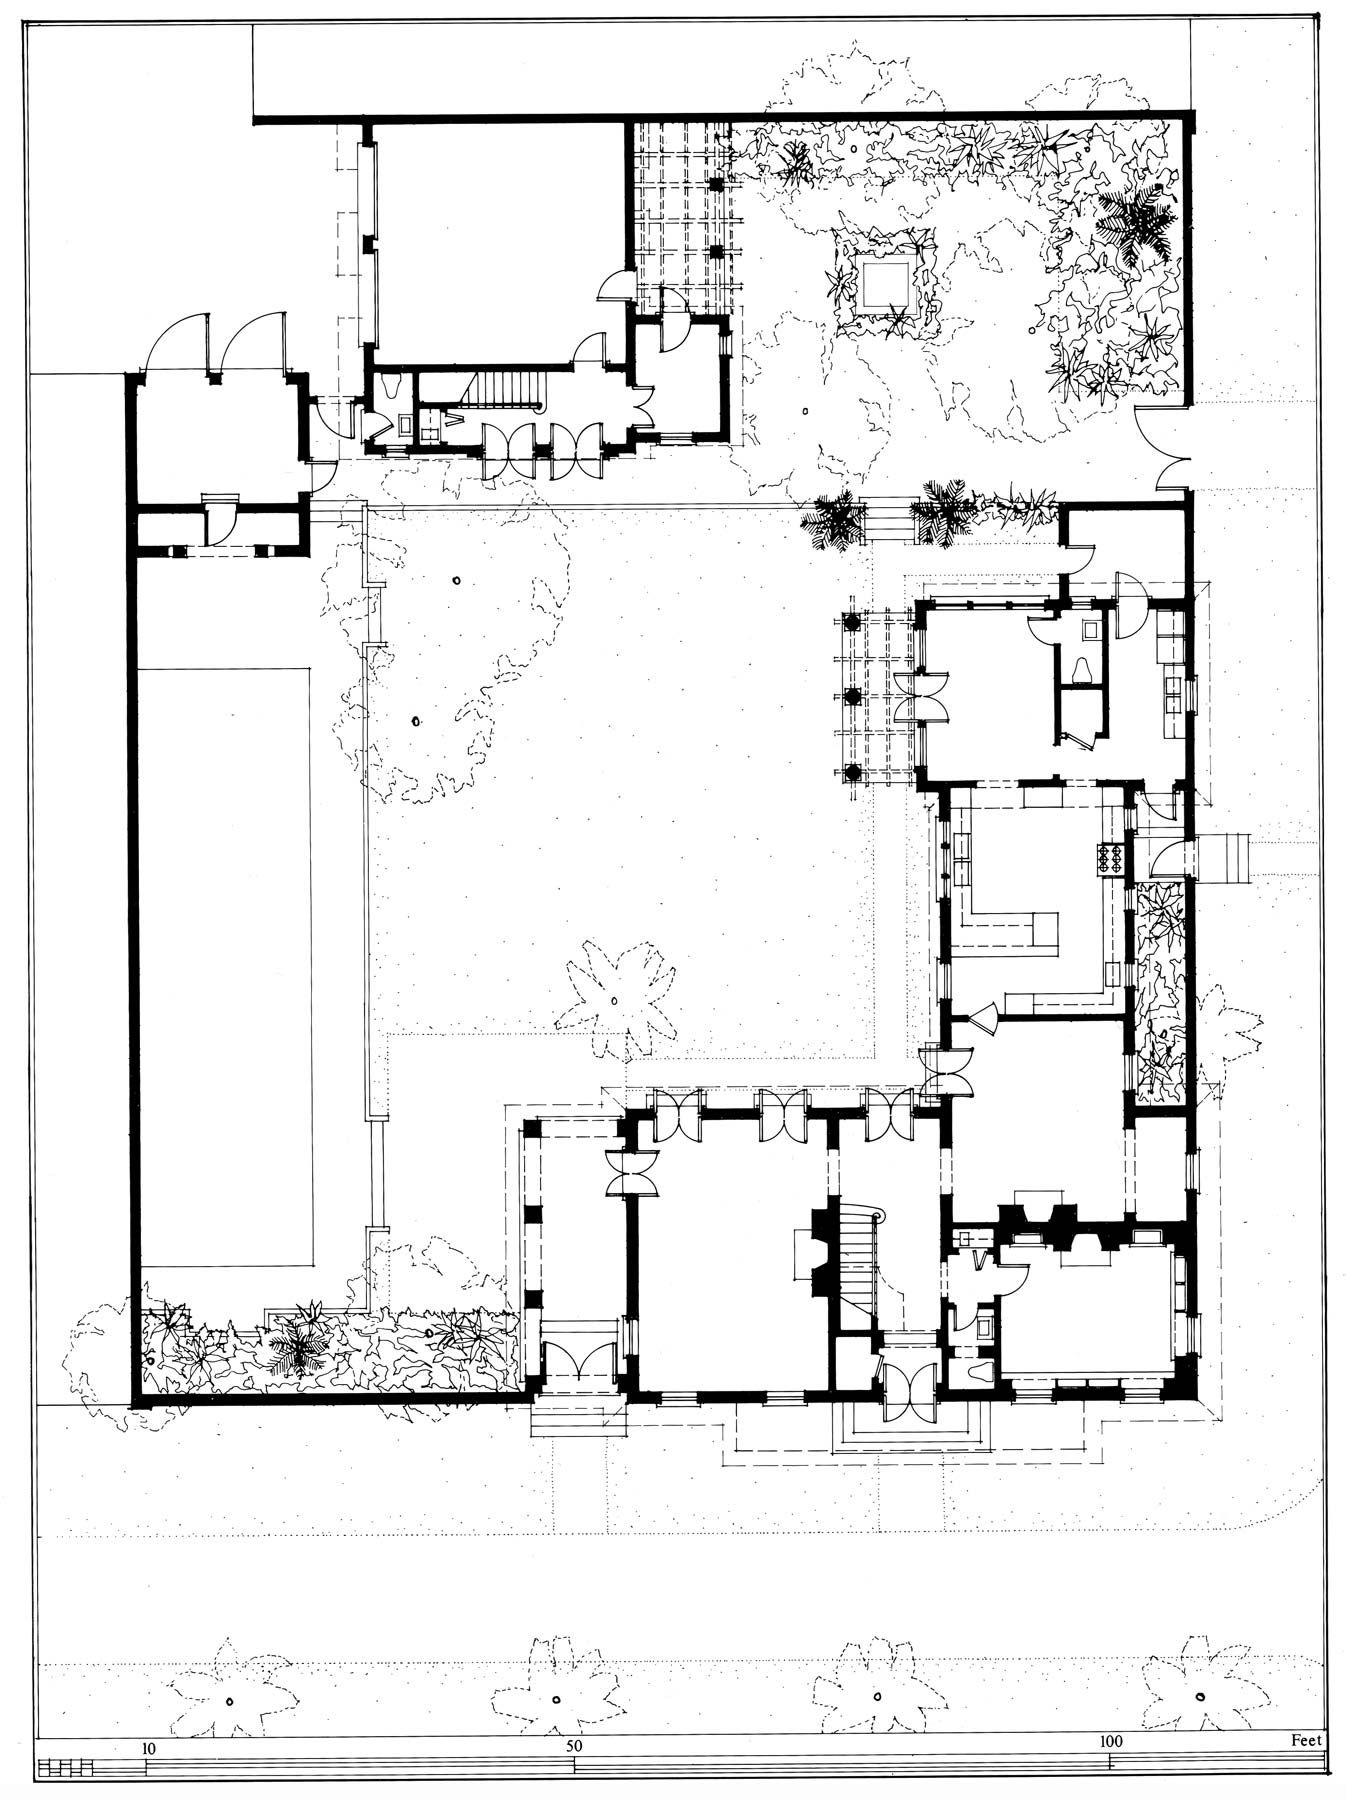 New House At Windsor G P Schafer Architects Architectural Floor Plans Vintage House Plans House Floor Plans